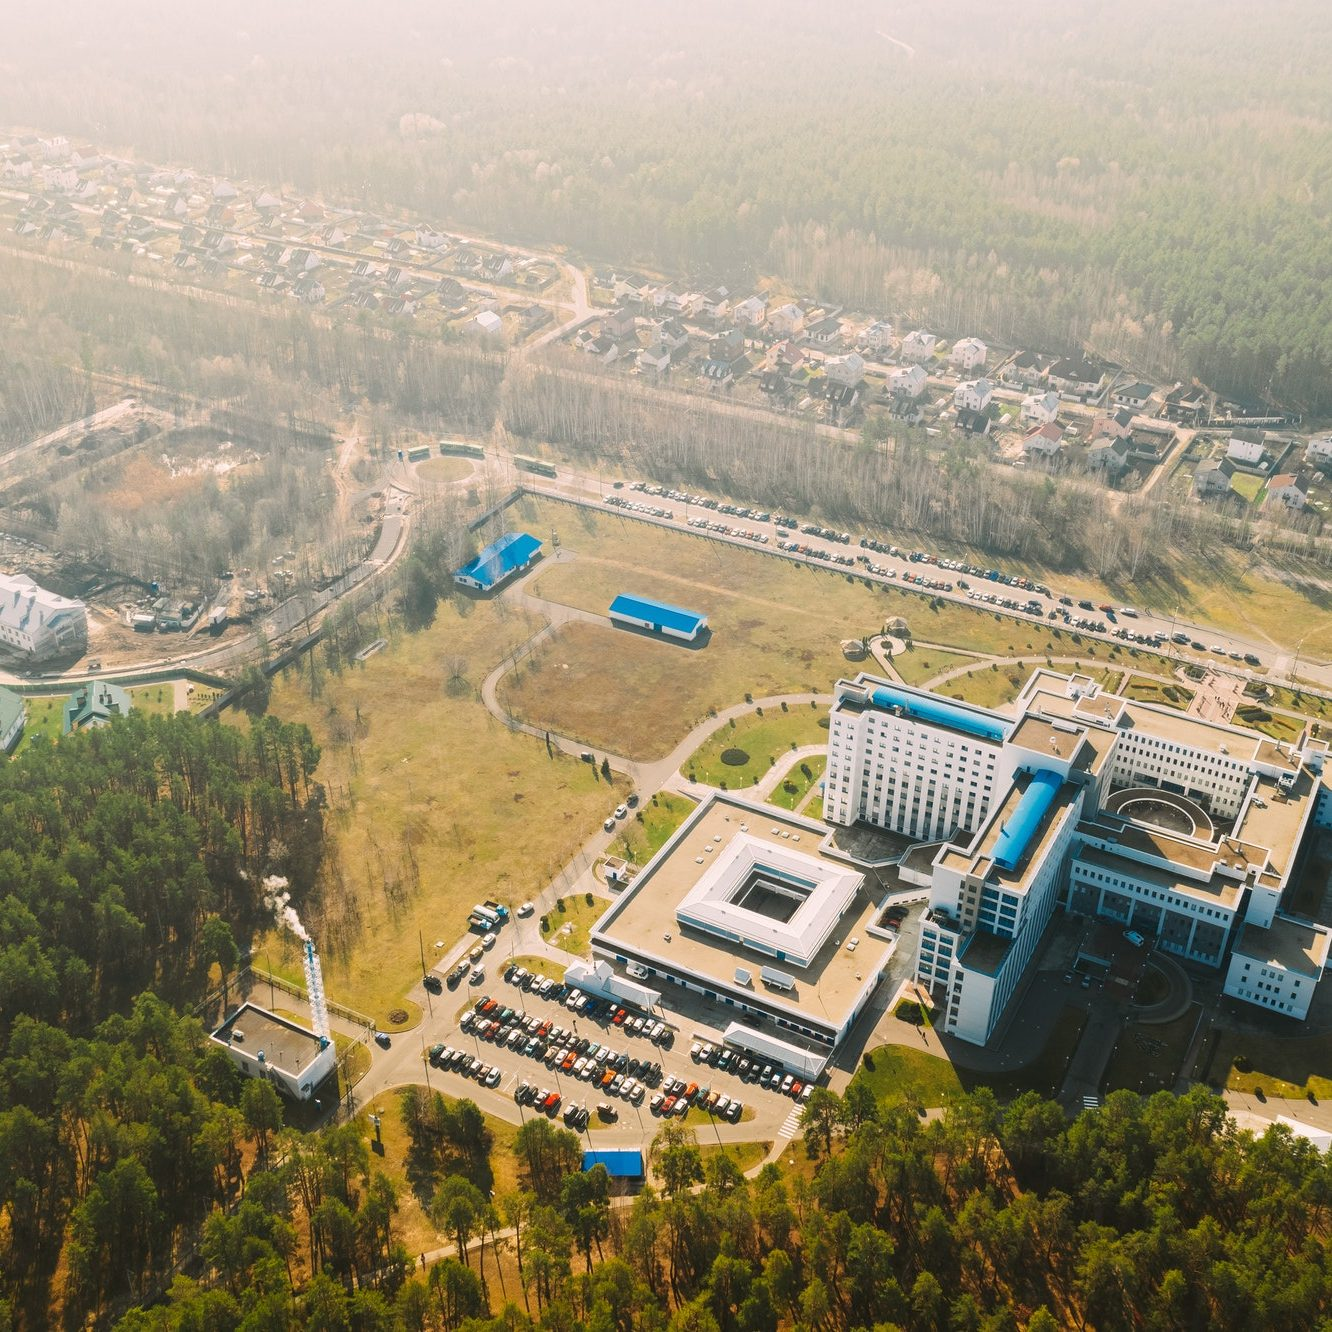 Aerial View OF Building Of Hospital In Spring Sunny Day. Top View. Drone View. Bird's Eye View